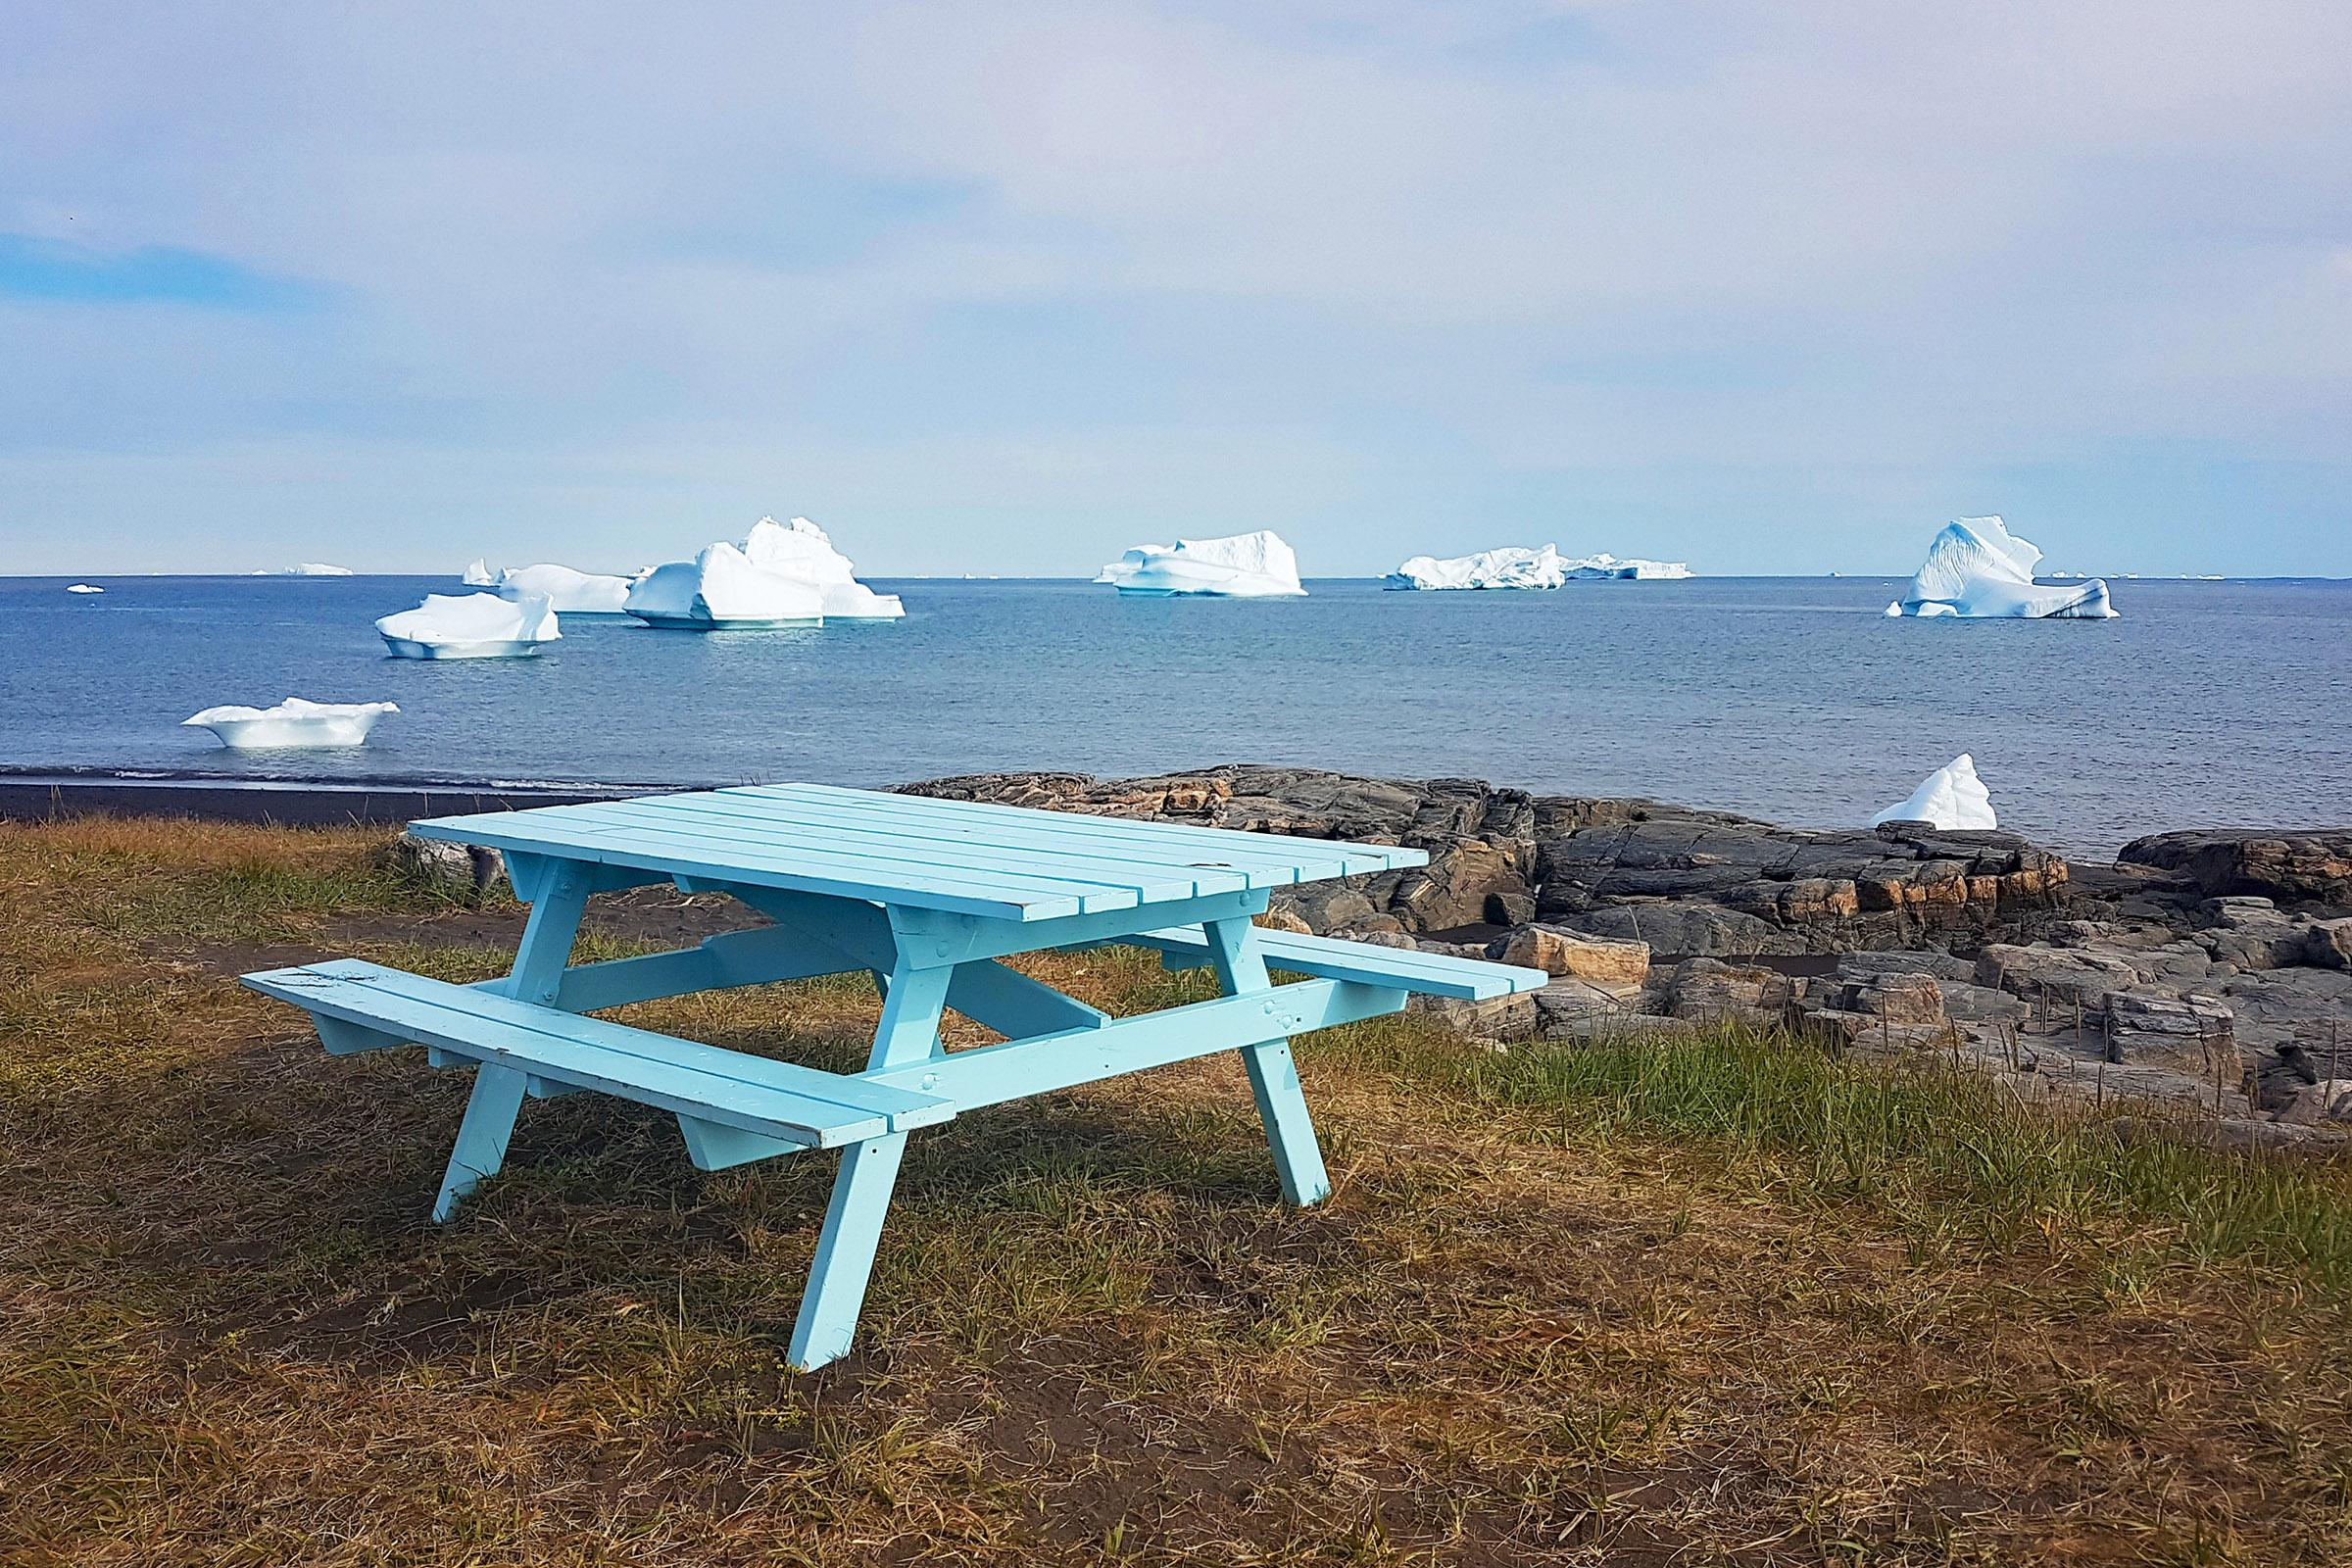 Picnic table with icebergs in the background in Qeqertarsuaq on Disko Island in Greenland. Jurga Rubinovaite.